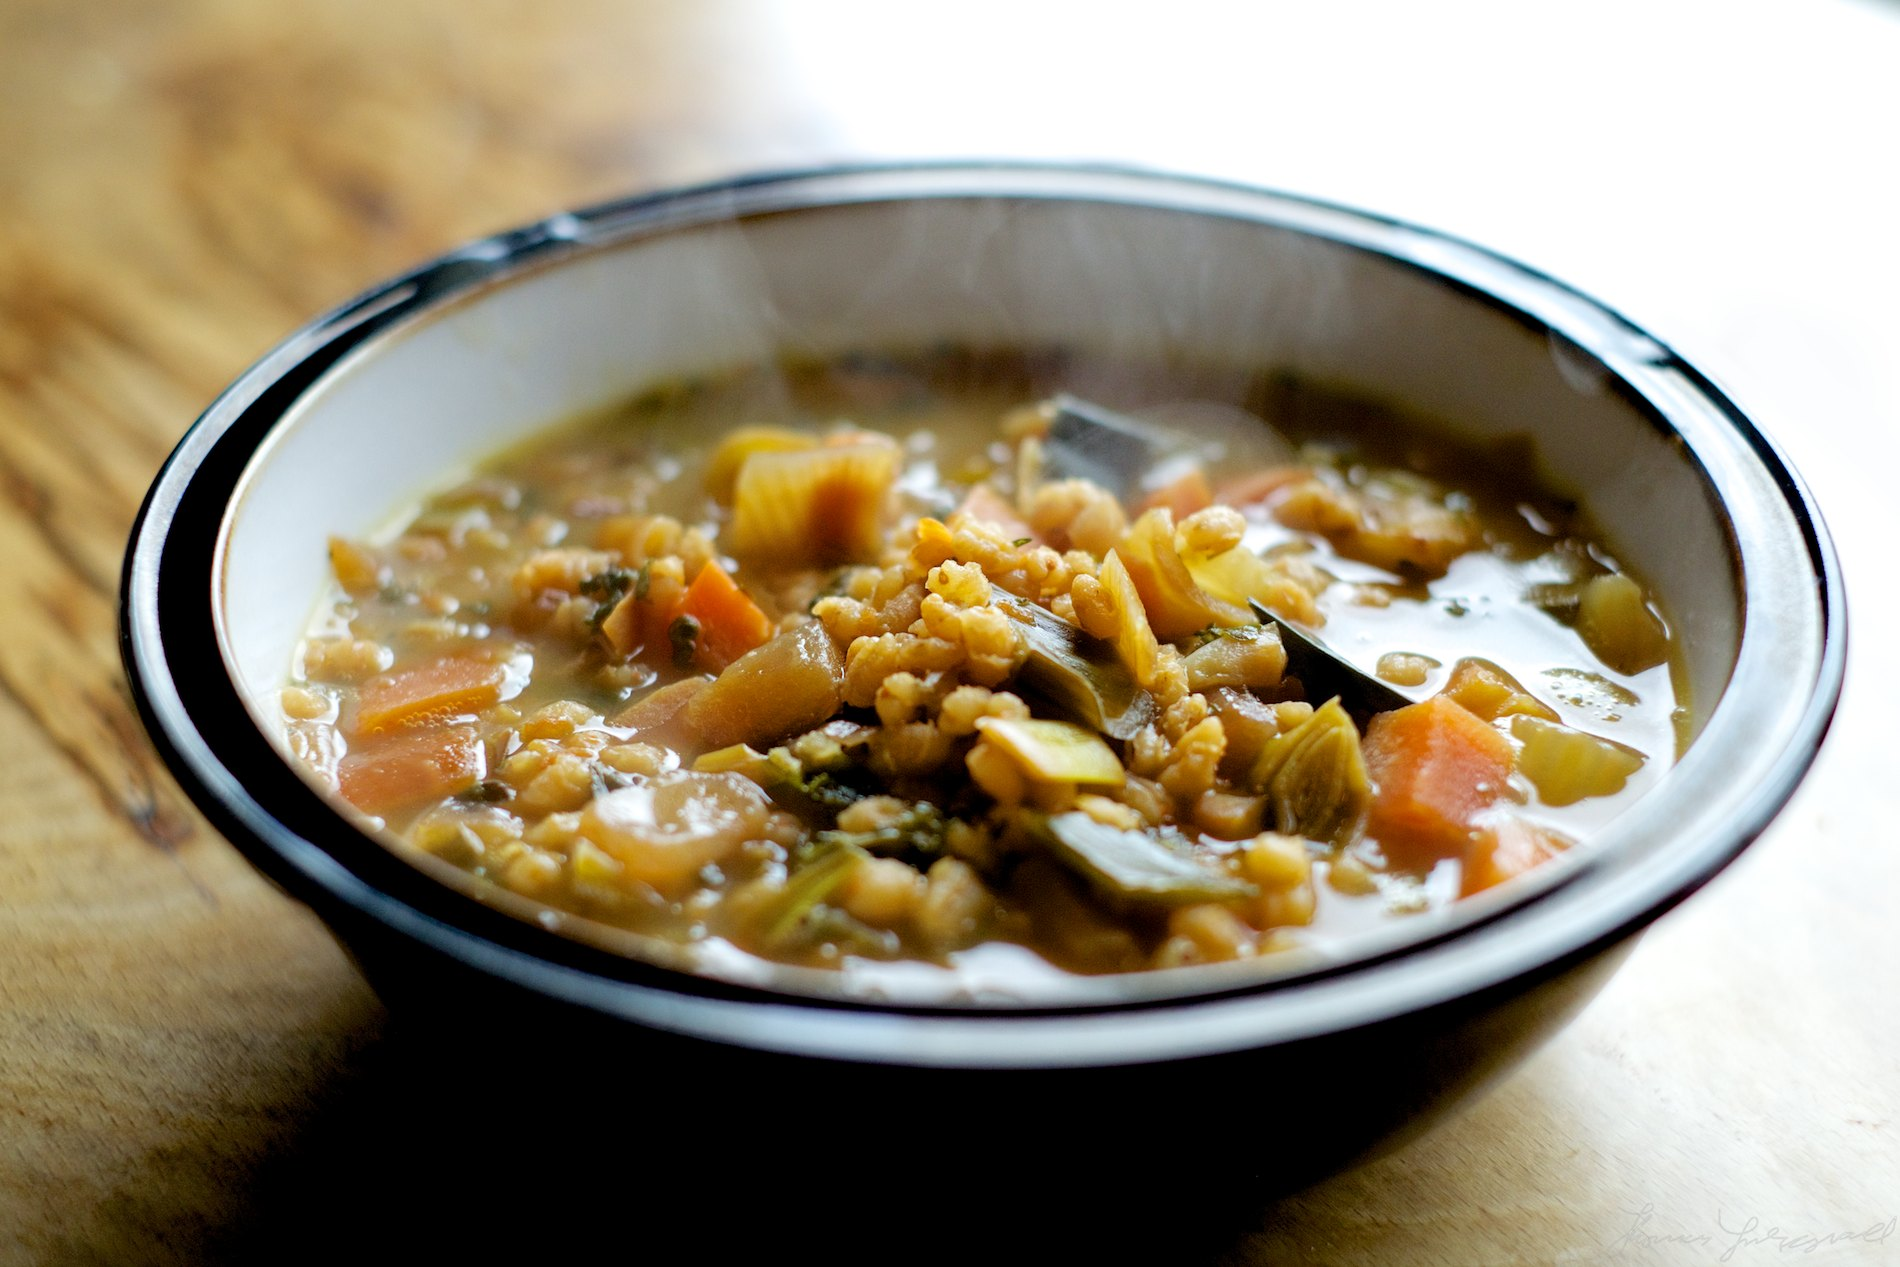 Soup in a bowl with steam rising